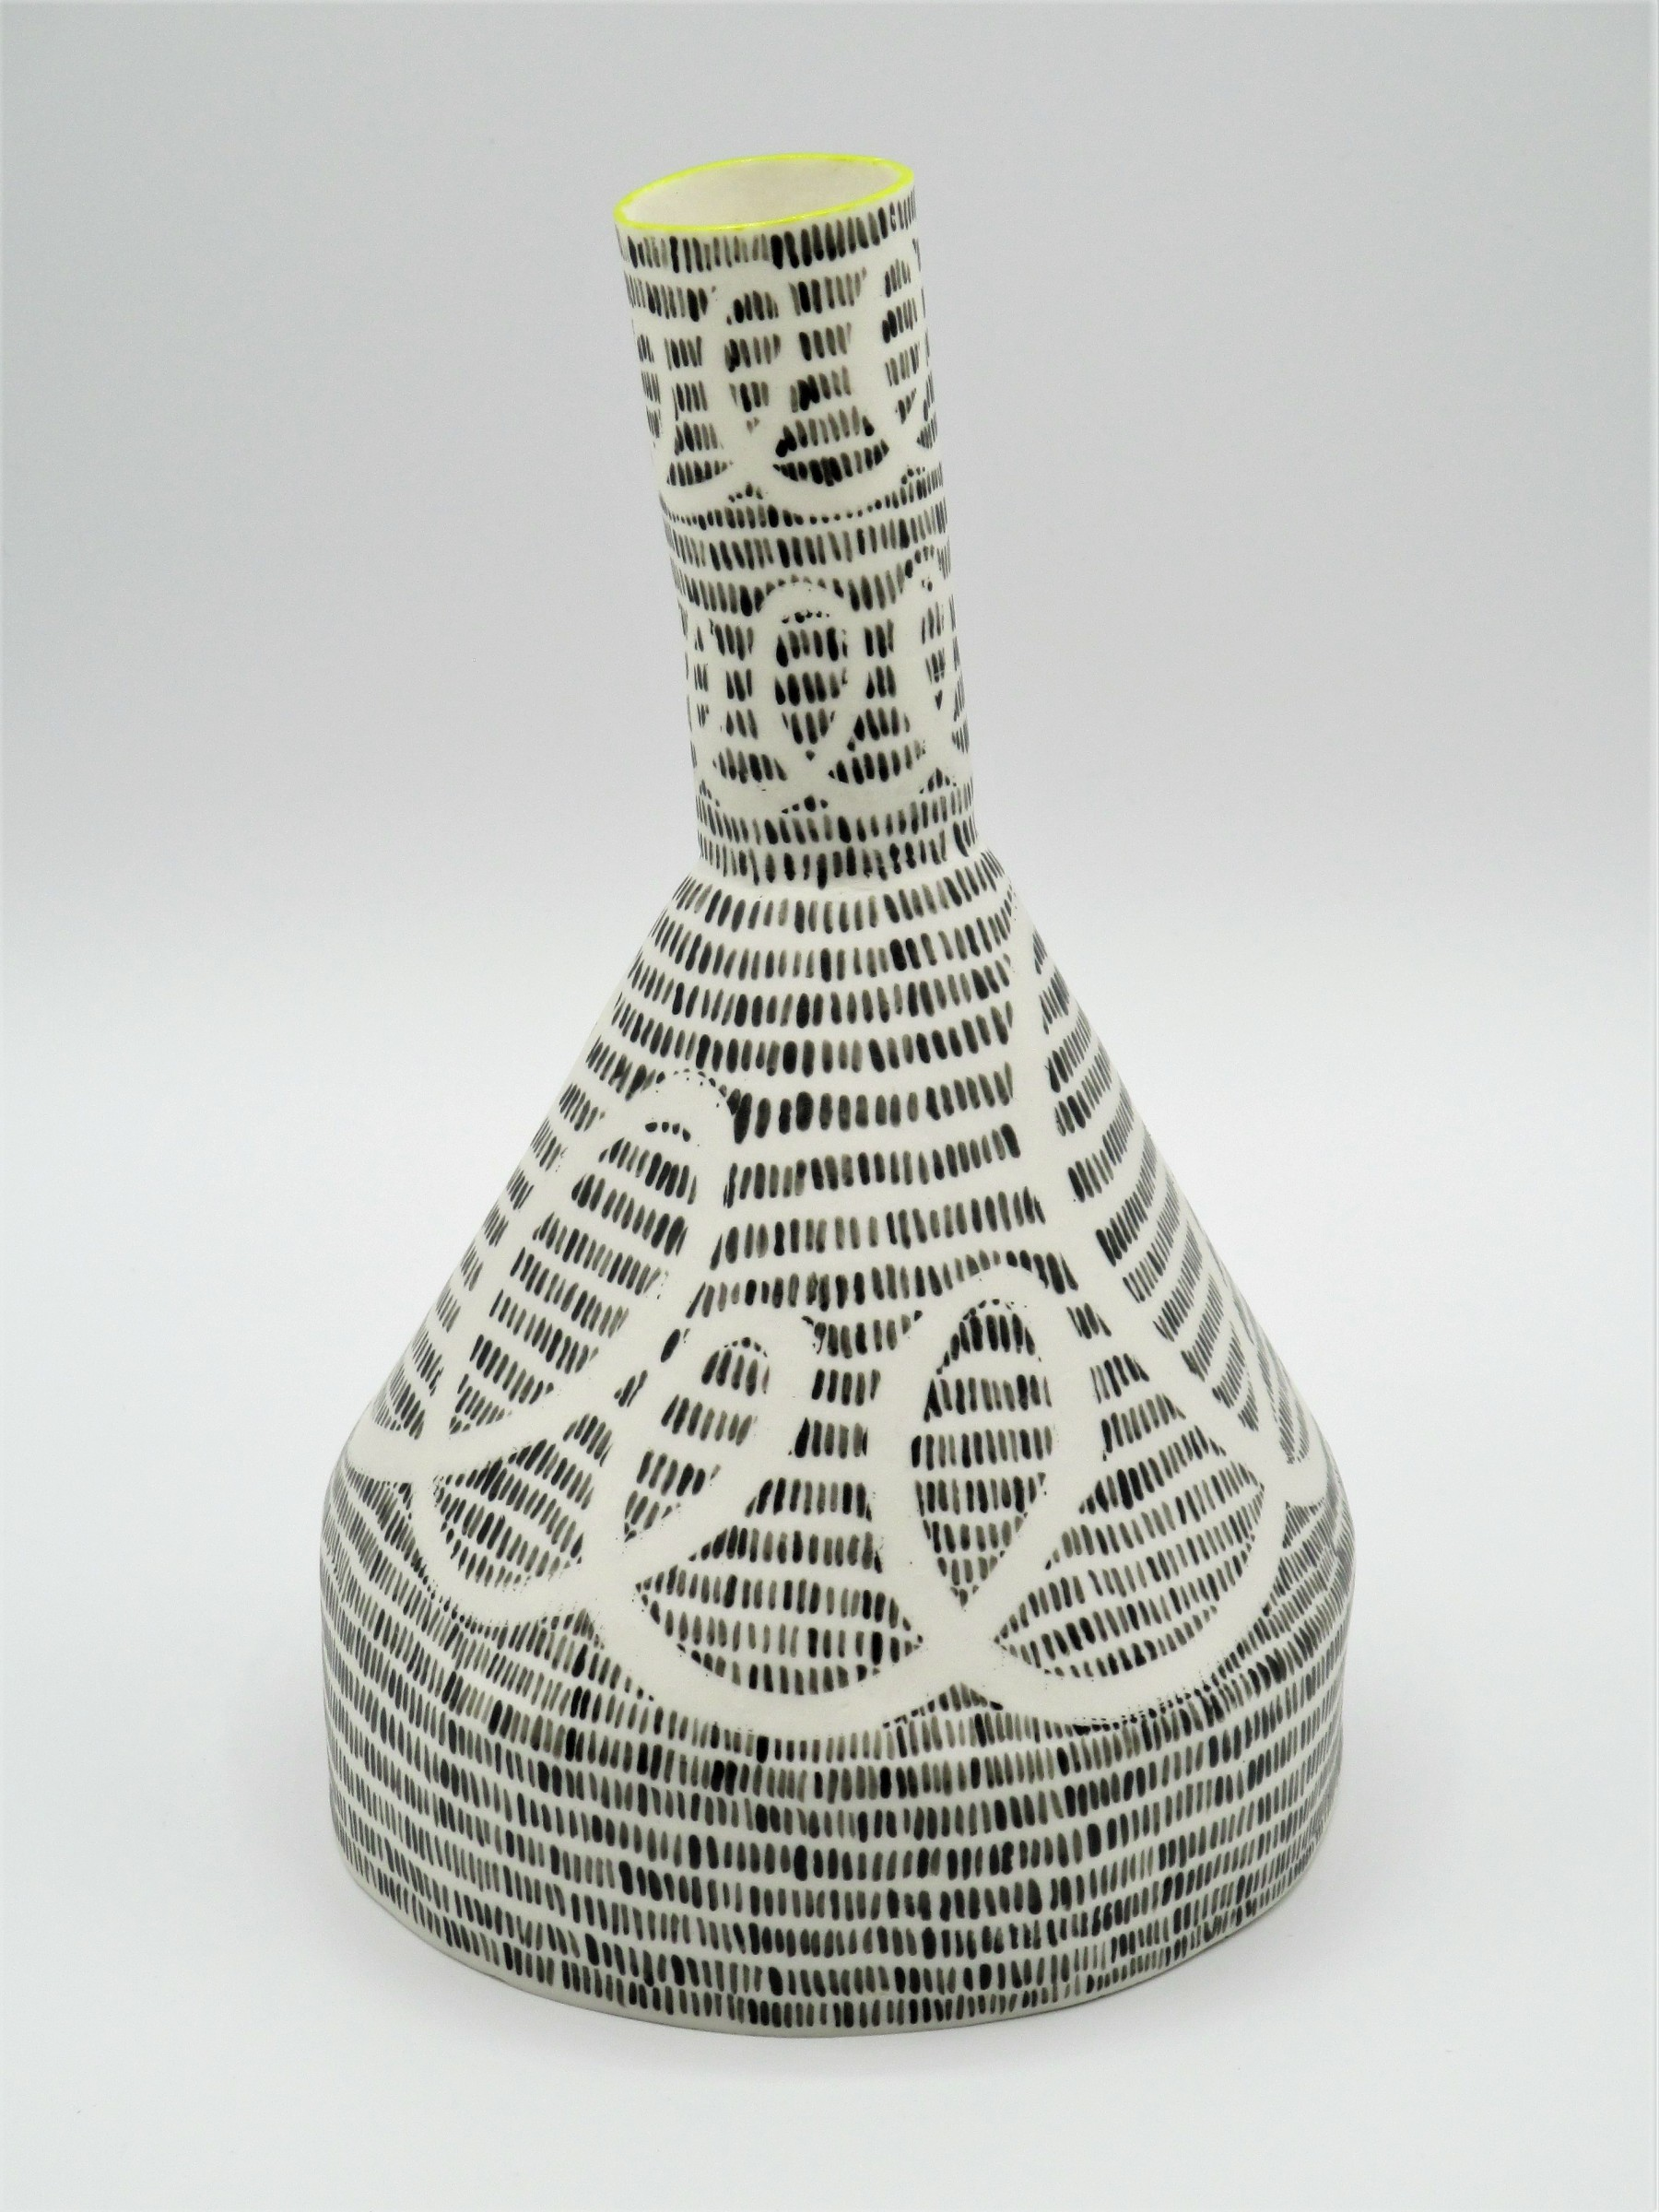 """<span class=""""link fancybox-details-link""""><a href=""""/artists/226-jane-muende/works/7156-jane-muende-conical-bottle-with-drawn-helter-skelter-and-lines-2020/"""">View Detail Page</a></span><div class=""""artist""""><strong>Jane Muende</strong></div> <div class=""""title""""><em>Conical bottle with drawn helter skelter and lines in wax crayon, lime green rim.</em>, 2020</div> <div class=""""medium"""">Hand built in paper porcelain</div> <div class=""""dimensions"""">24 x 13 cm</div><div class=""""price"""">£245.00</div><div class=""""copyright_line"""">Own Art: £24.50 x 10 months 0% APR</div>"""